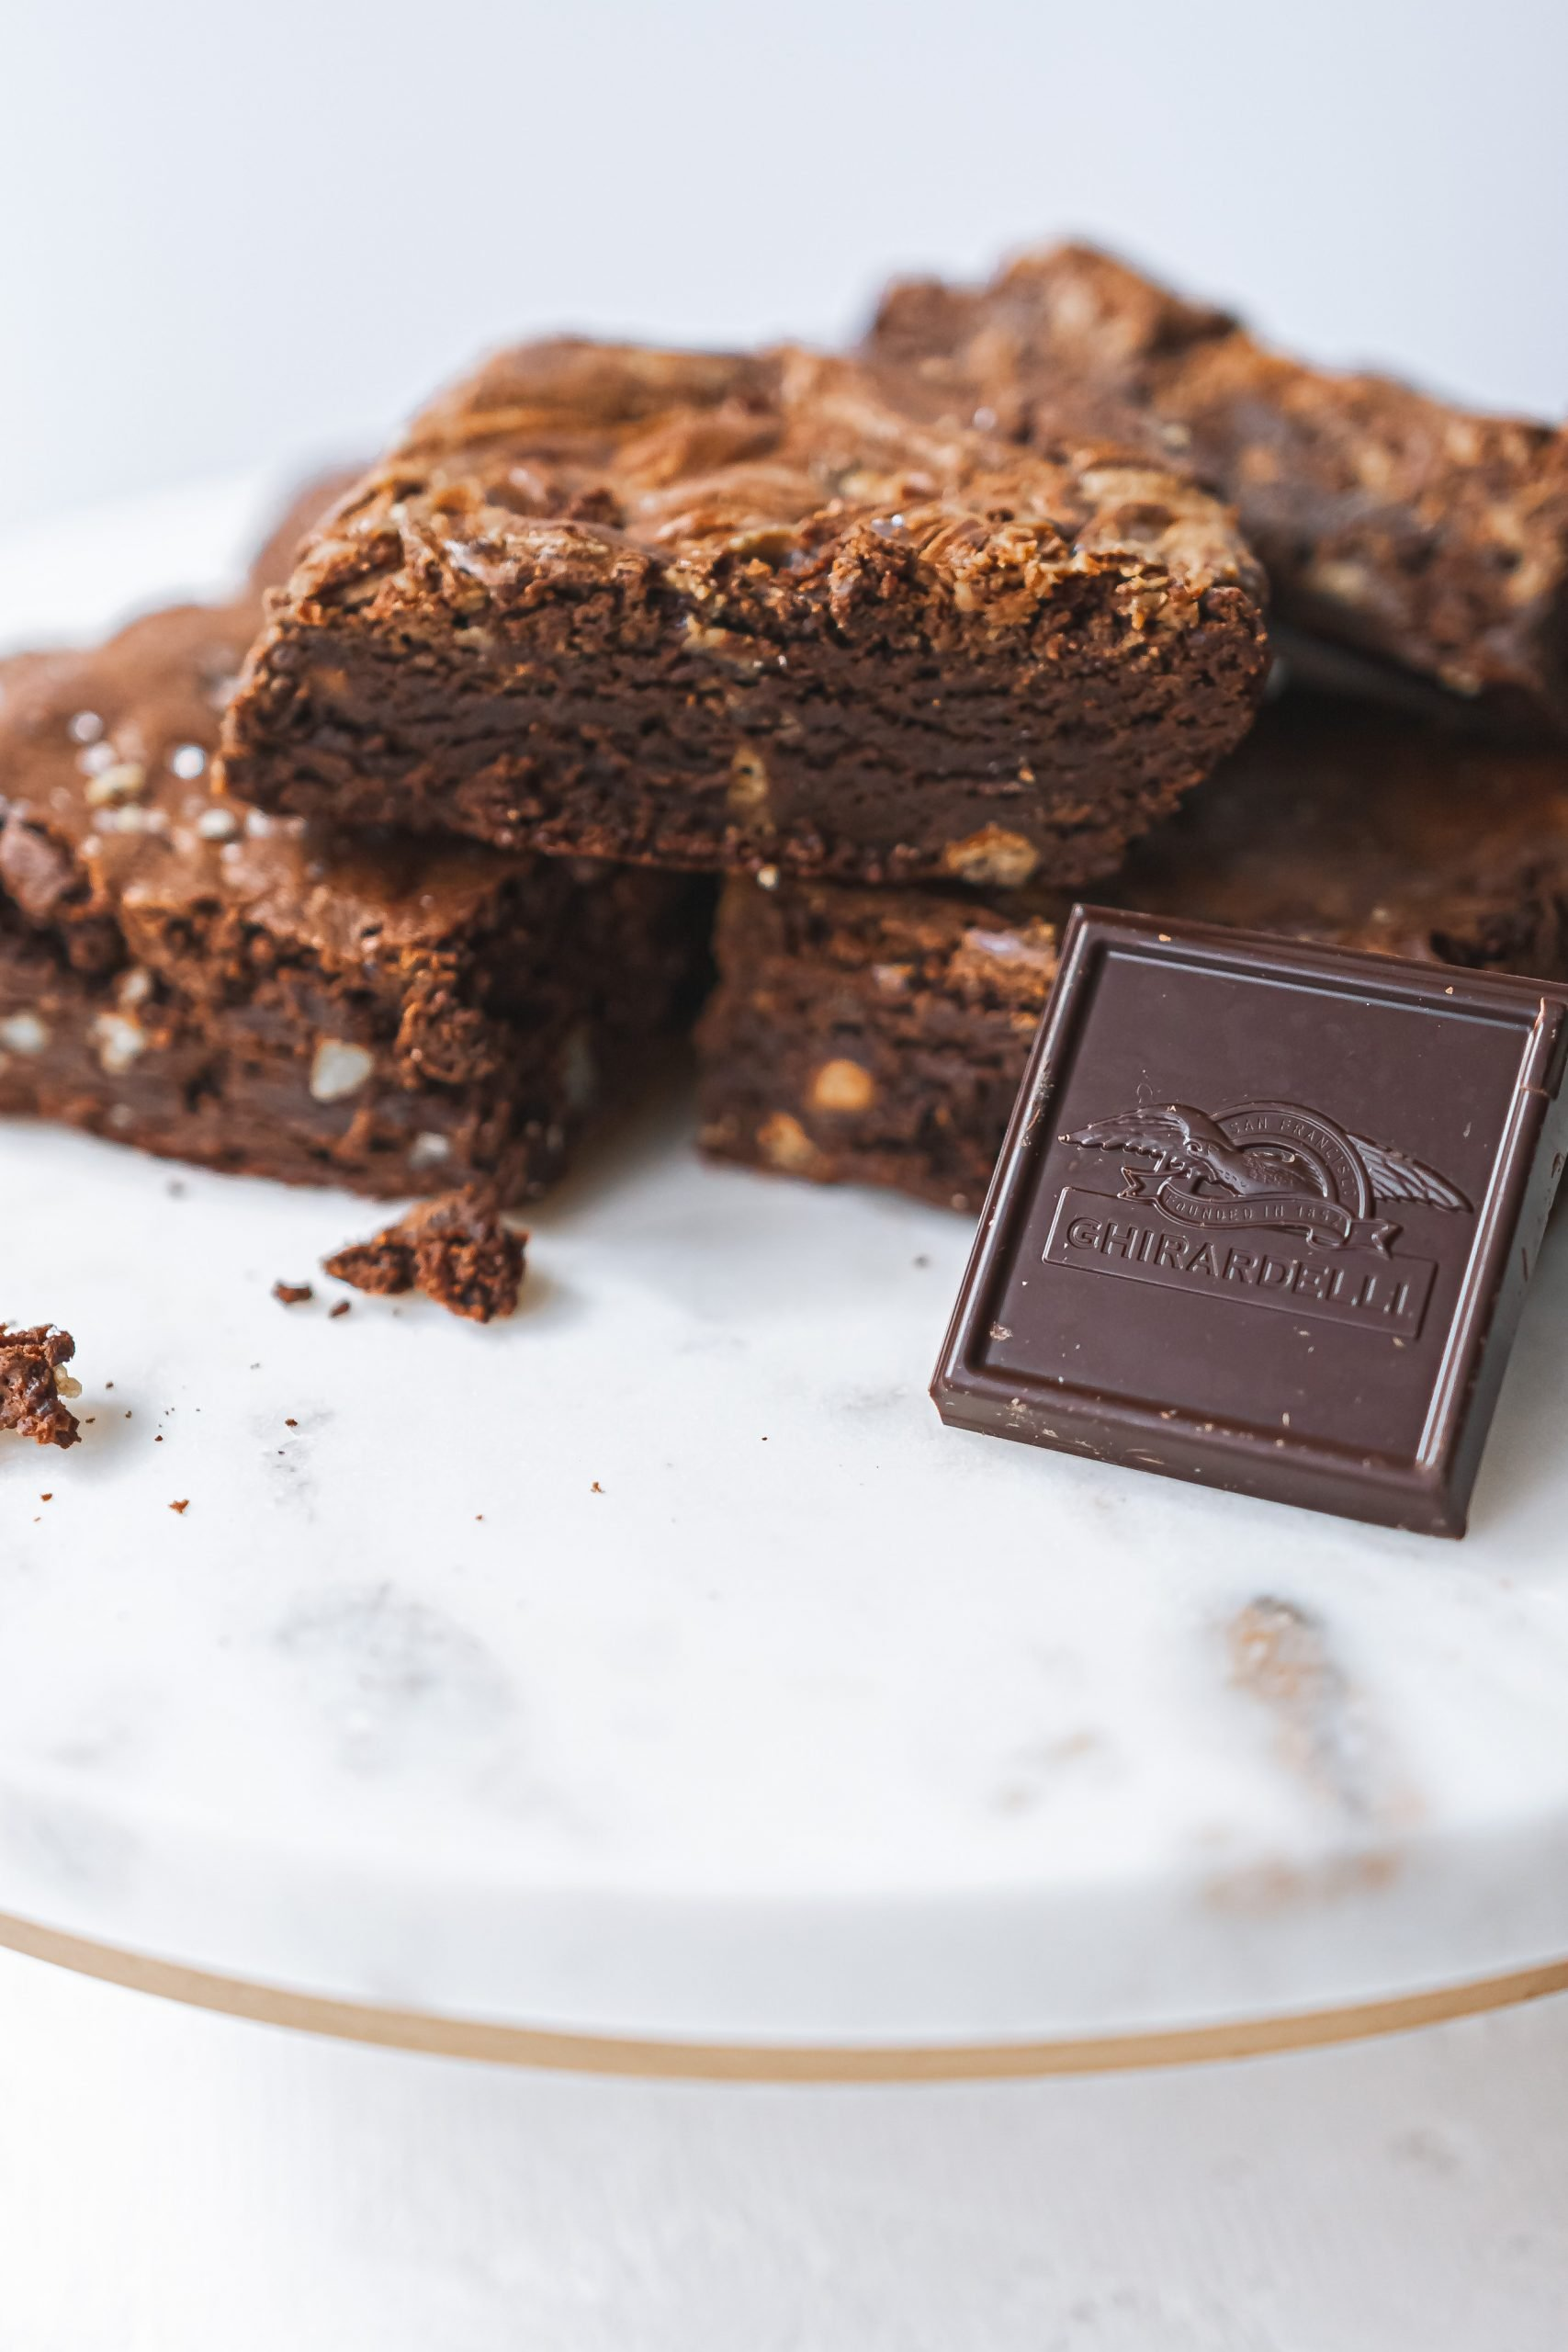 Food photo of brownies with Ghirardelli chocolate square